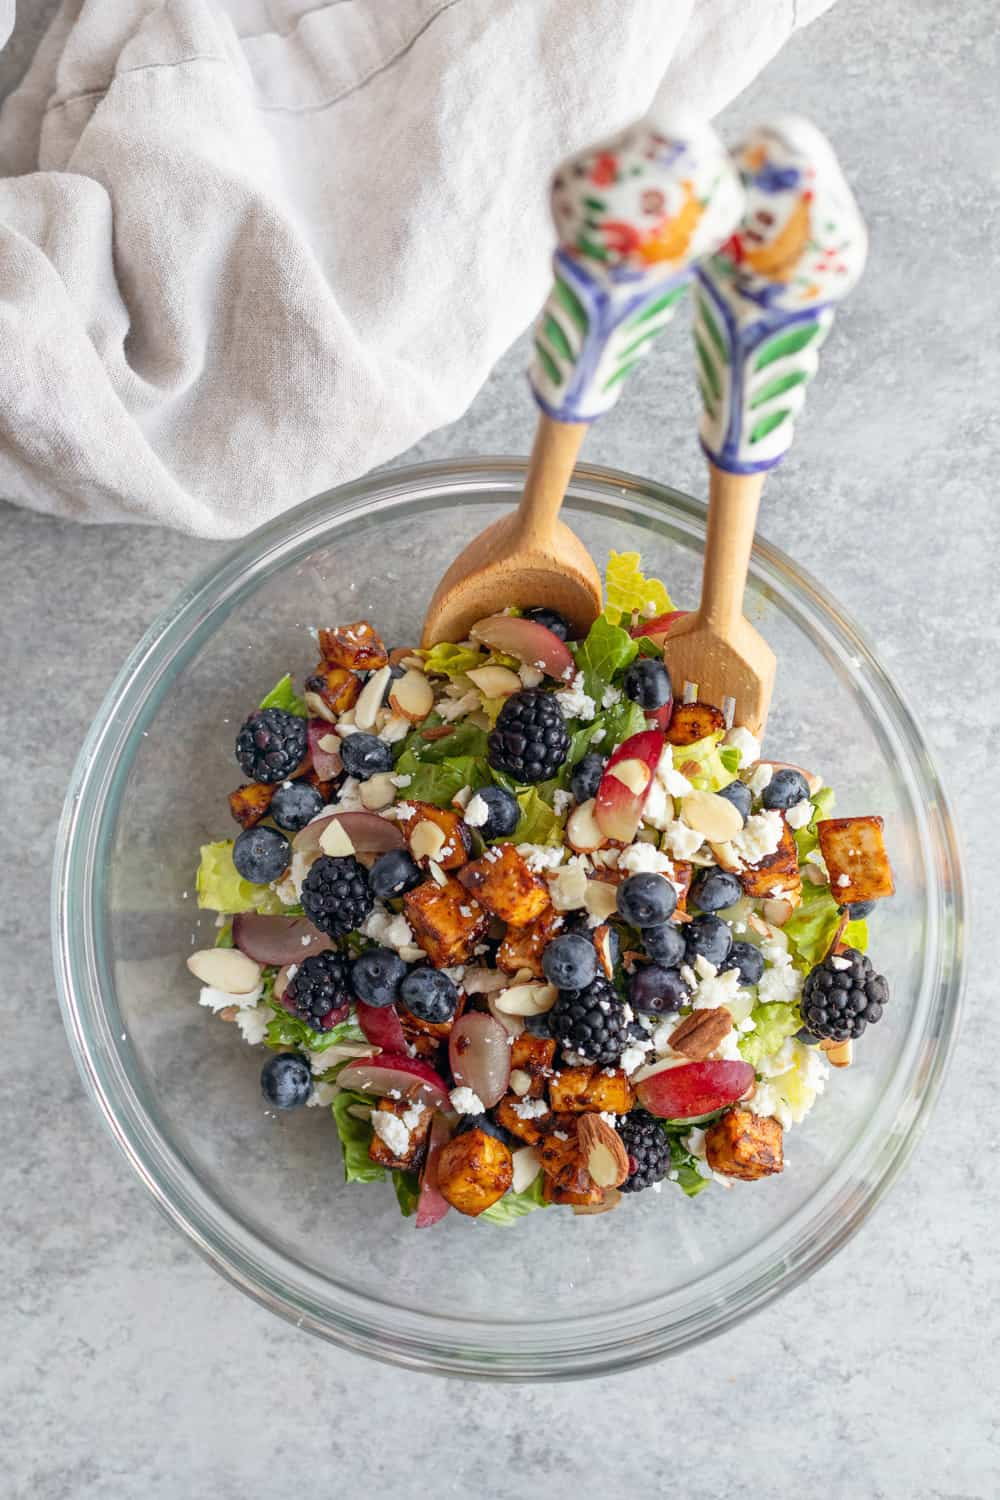 Rainbow Berry Salad with Almond Dressing.